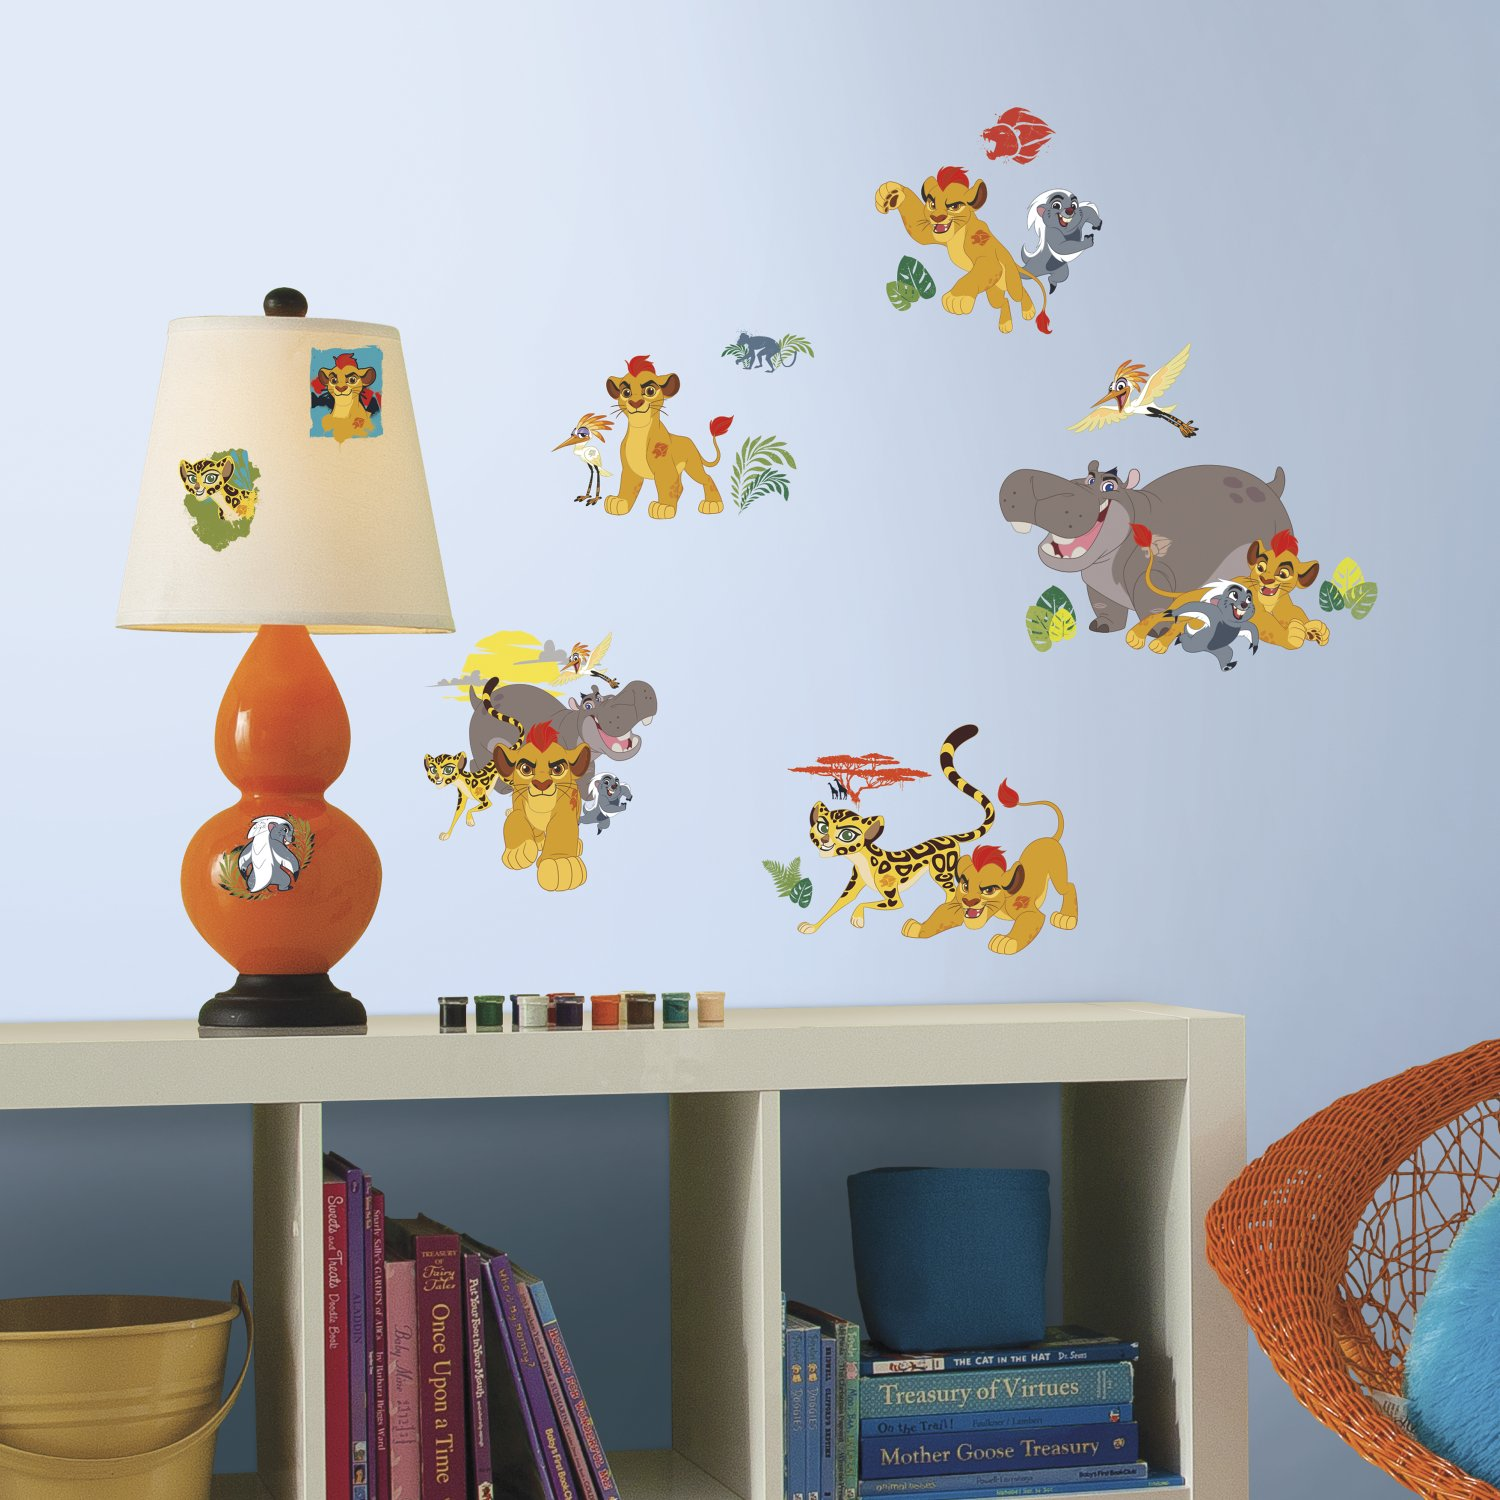 Room Studio 539160 Decoration Repositionable Vinyl Multielement Disney Lion King Plastic Yellow 25x01x46 Cm Amazoncouk Kitchen Home